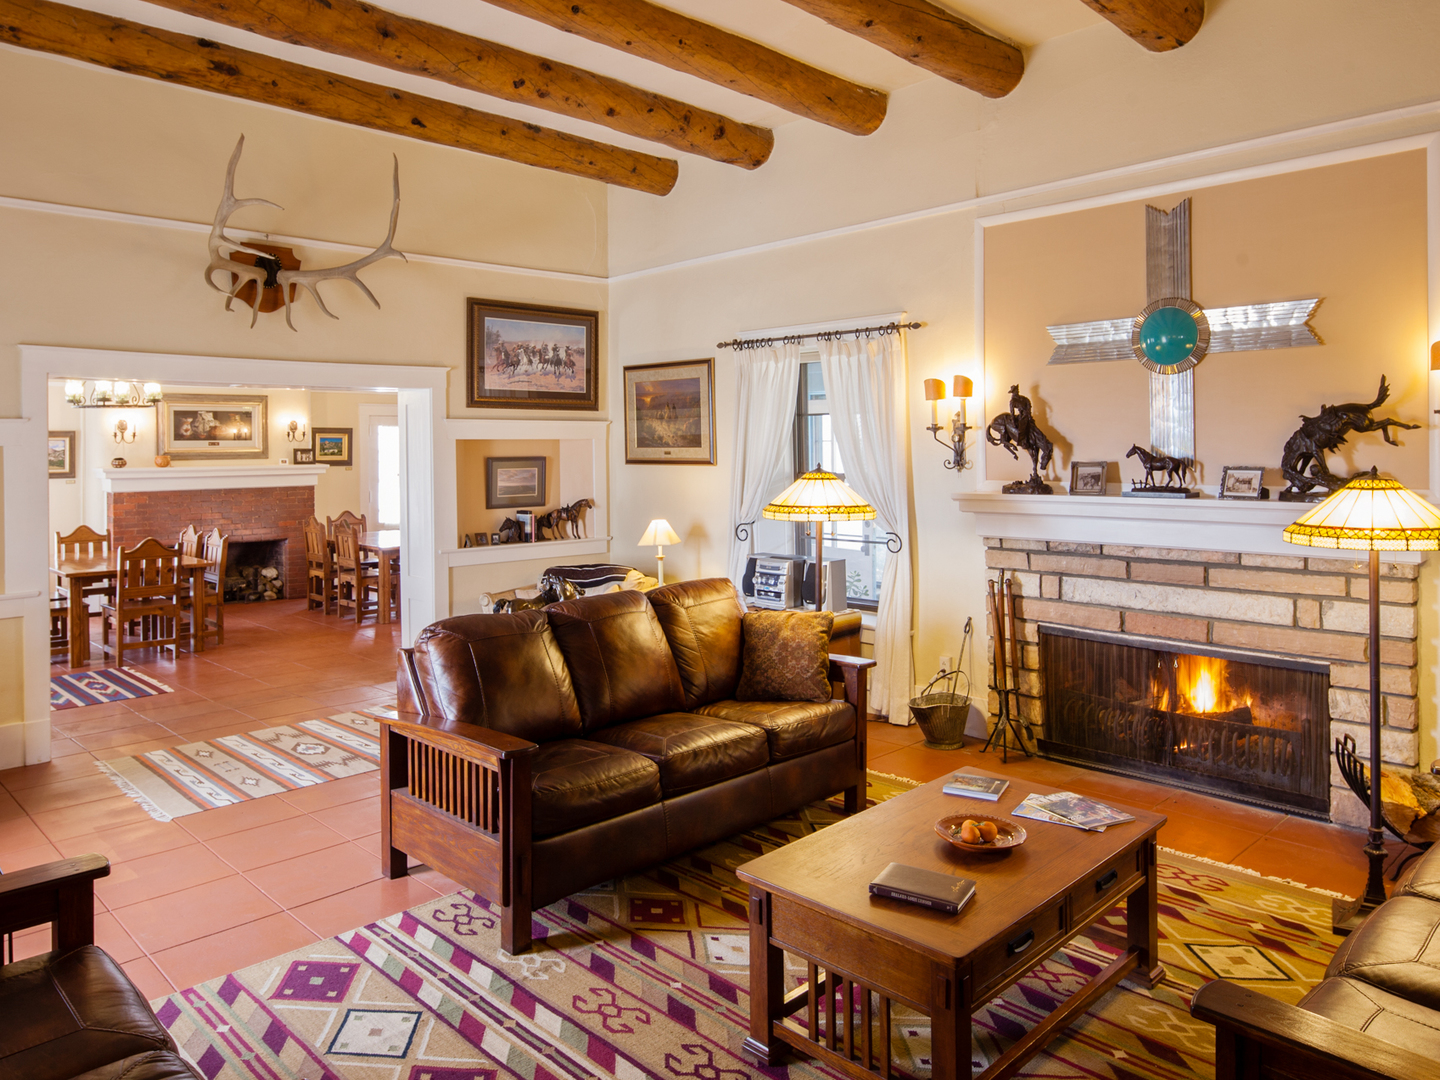 A living room filled with furniture and a fire place at Casa del Gavilan Historic Inn.